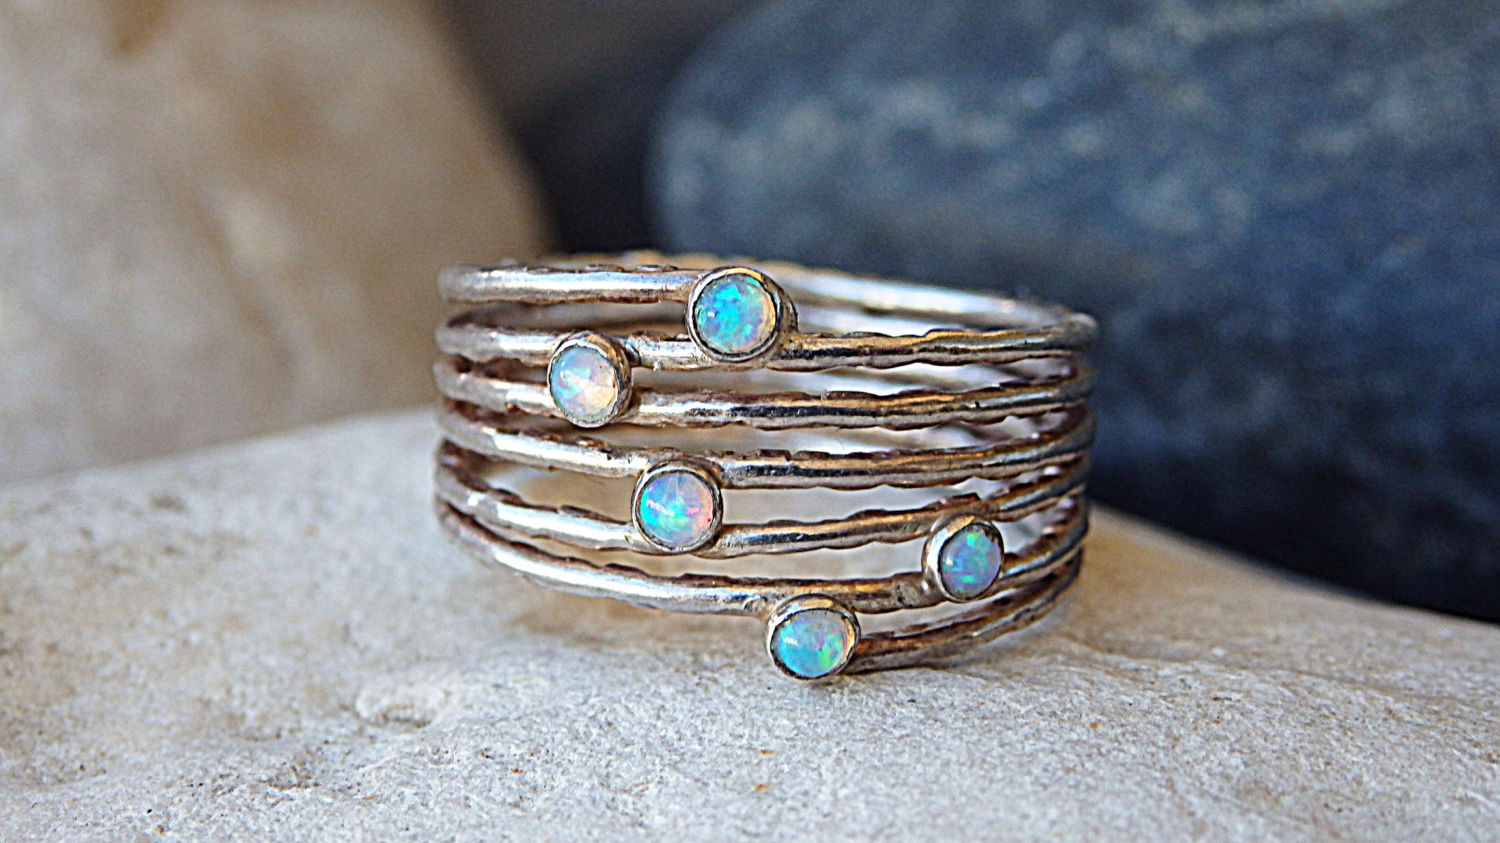 In love with these beautiful and perfectly stackable boho rings! https://t.co/hCySb8VaOr https://t.co/FeNwL20l4Z